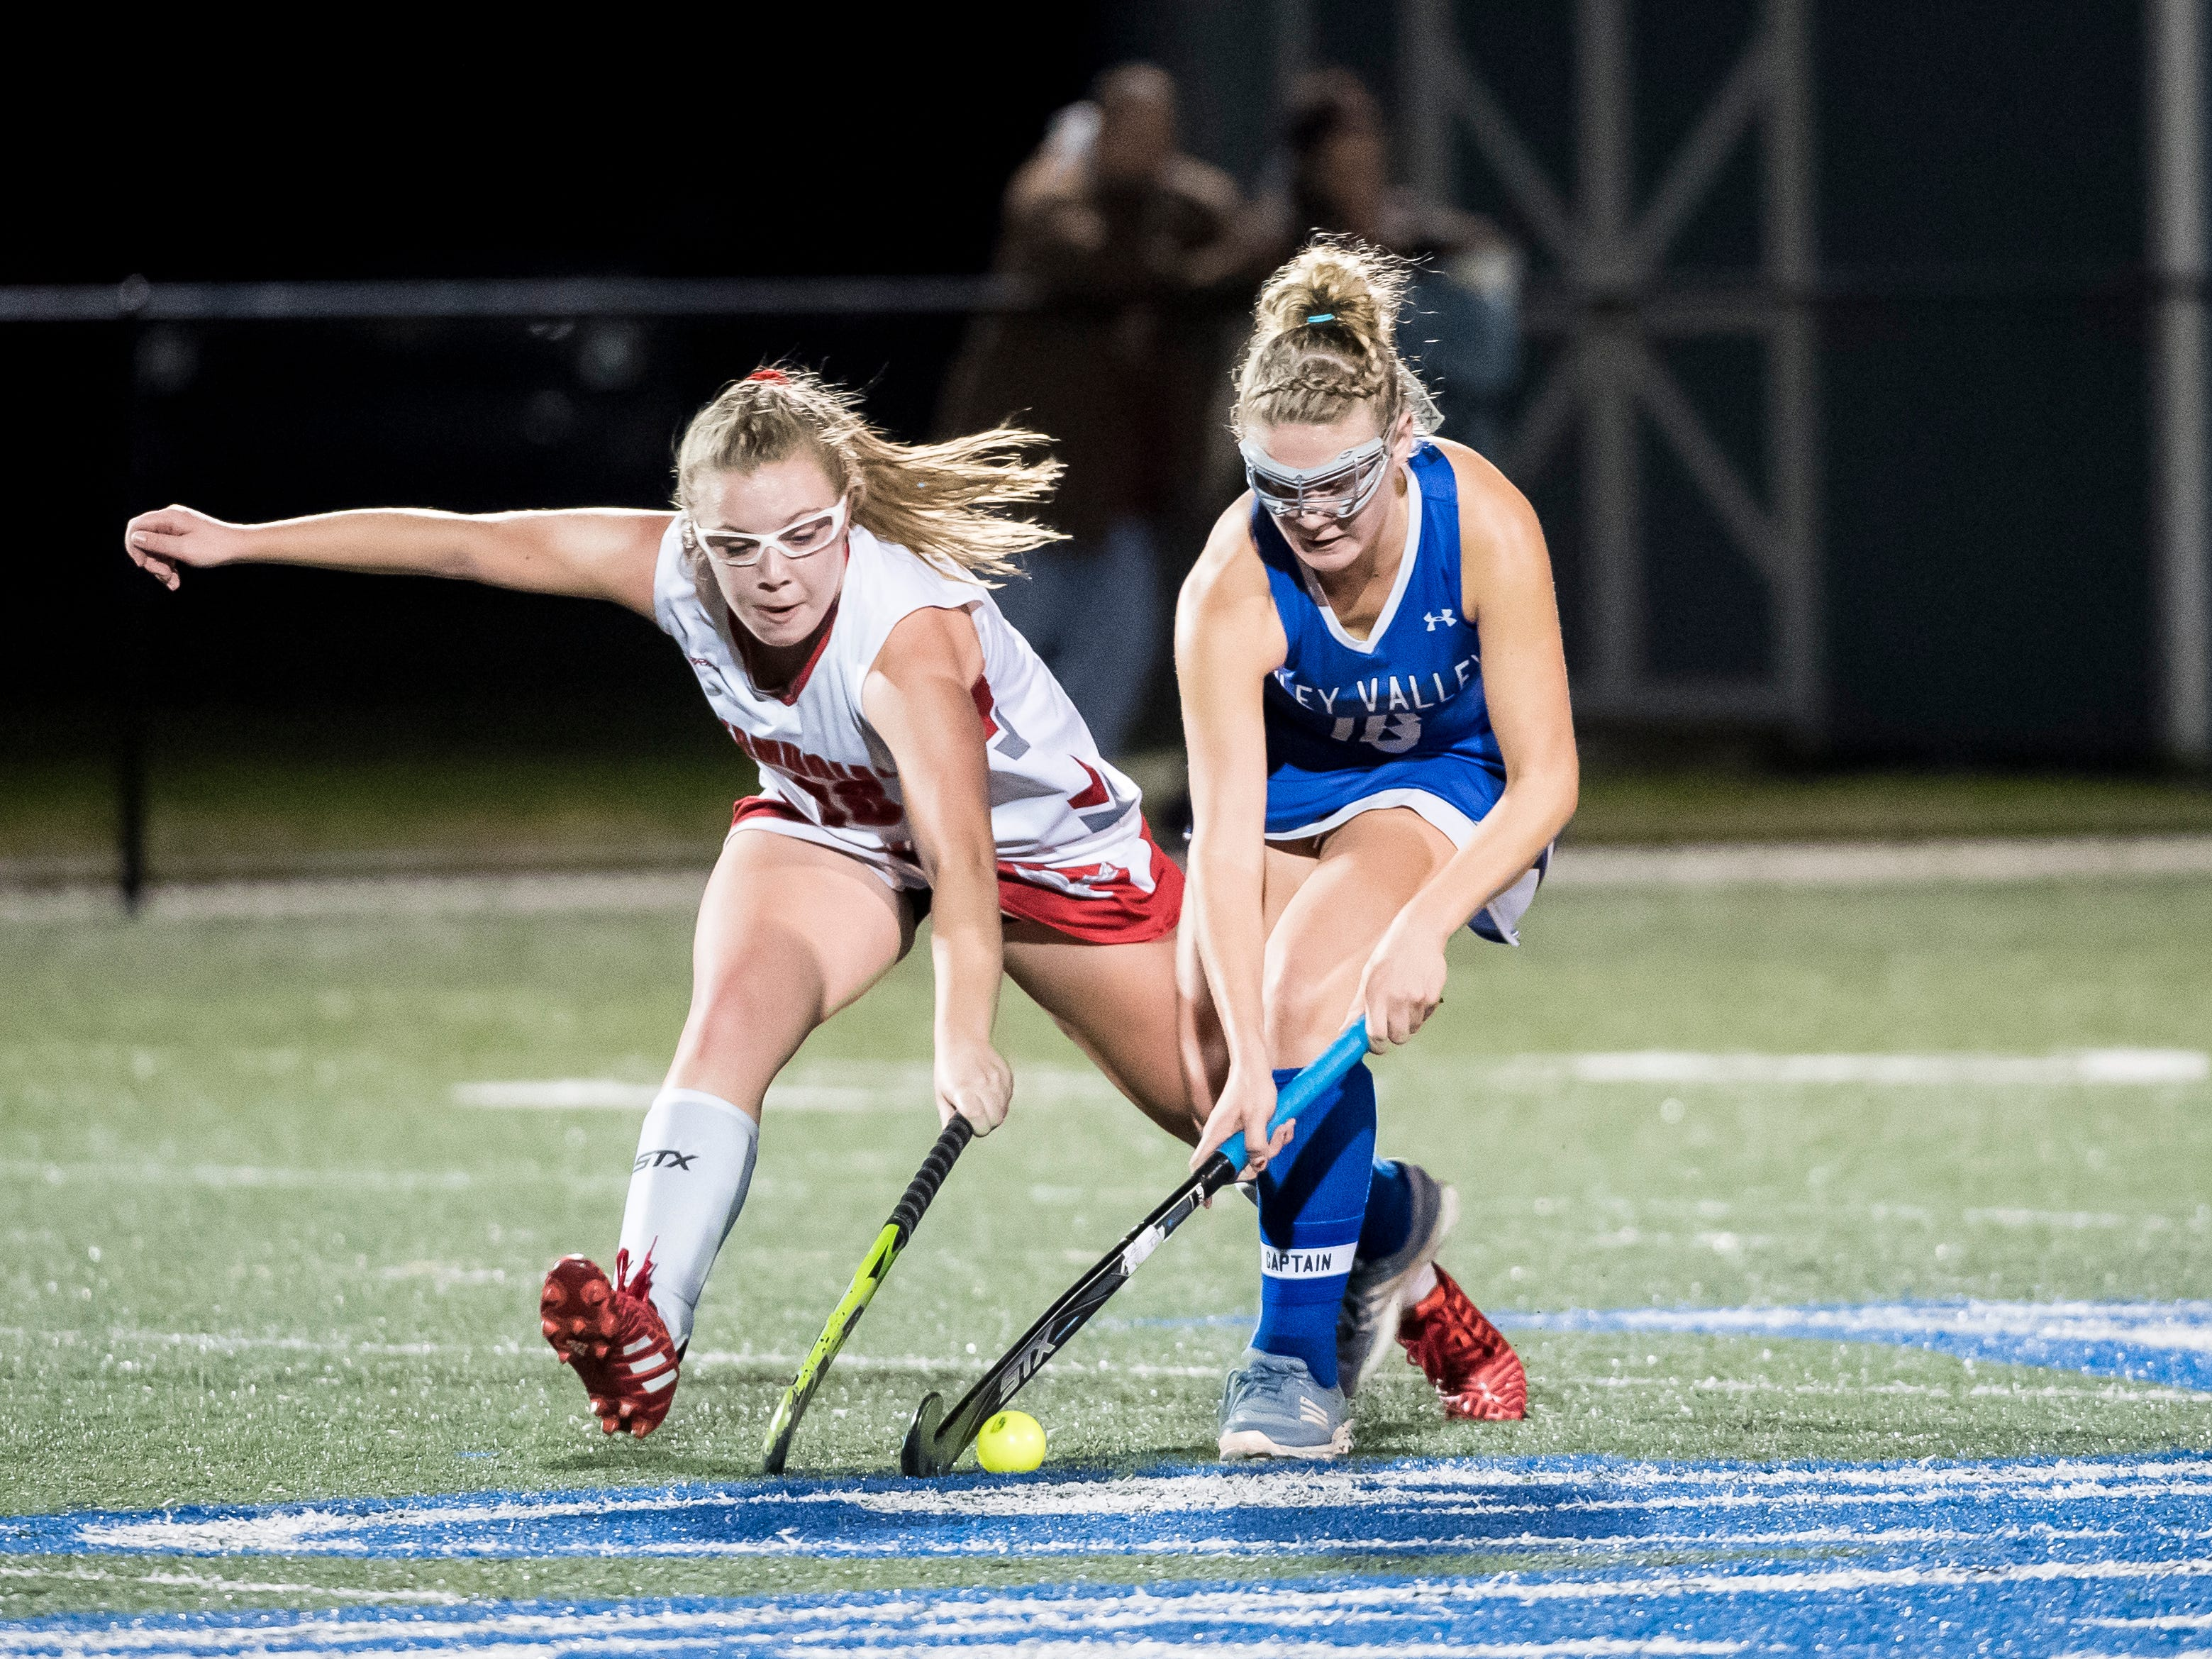 Bermudian Springs' Grace Metzger tries to take control of the ball from Oley Valley's Sarah Beers during a District III Class A semifinal game at Lower Dauphin Middle School on Wednesday, October 31, 2018. The Eagles fell 5-0.